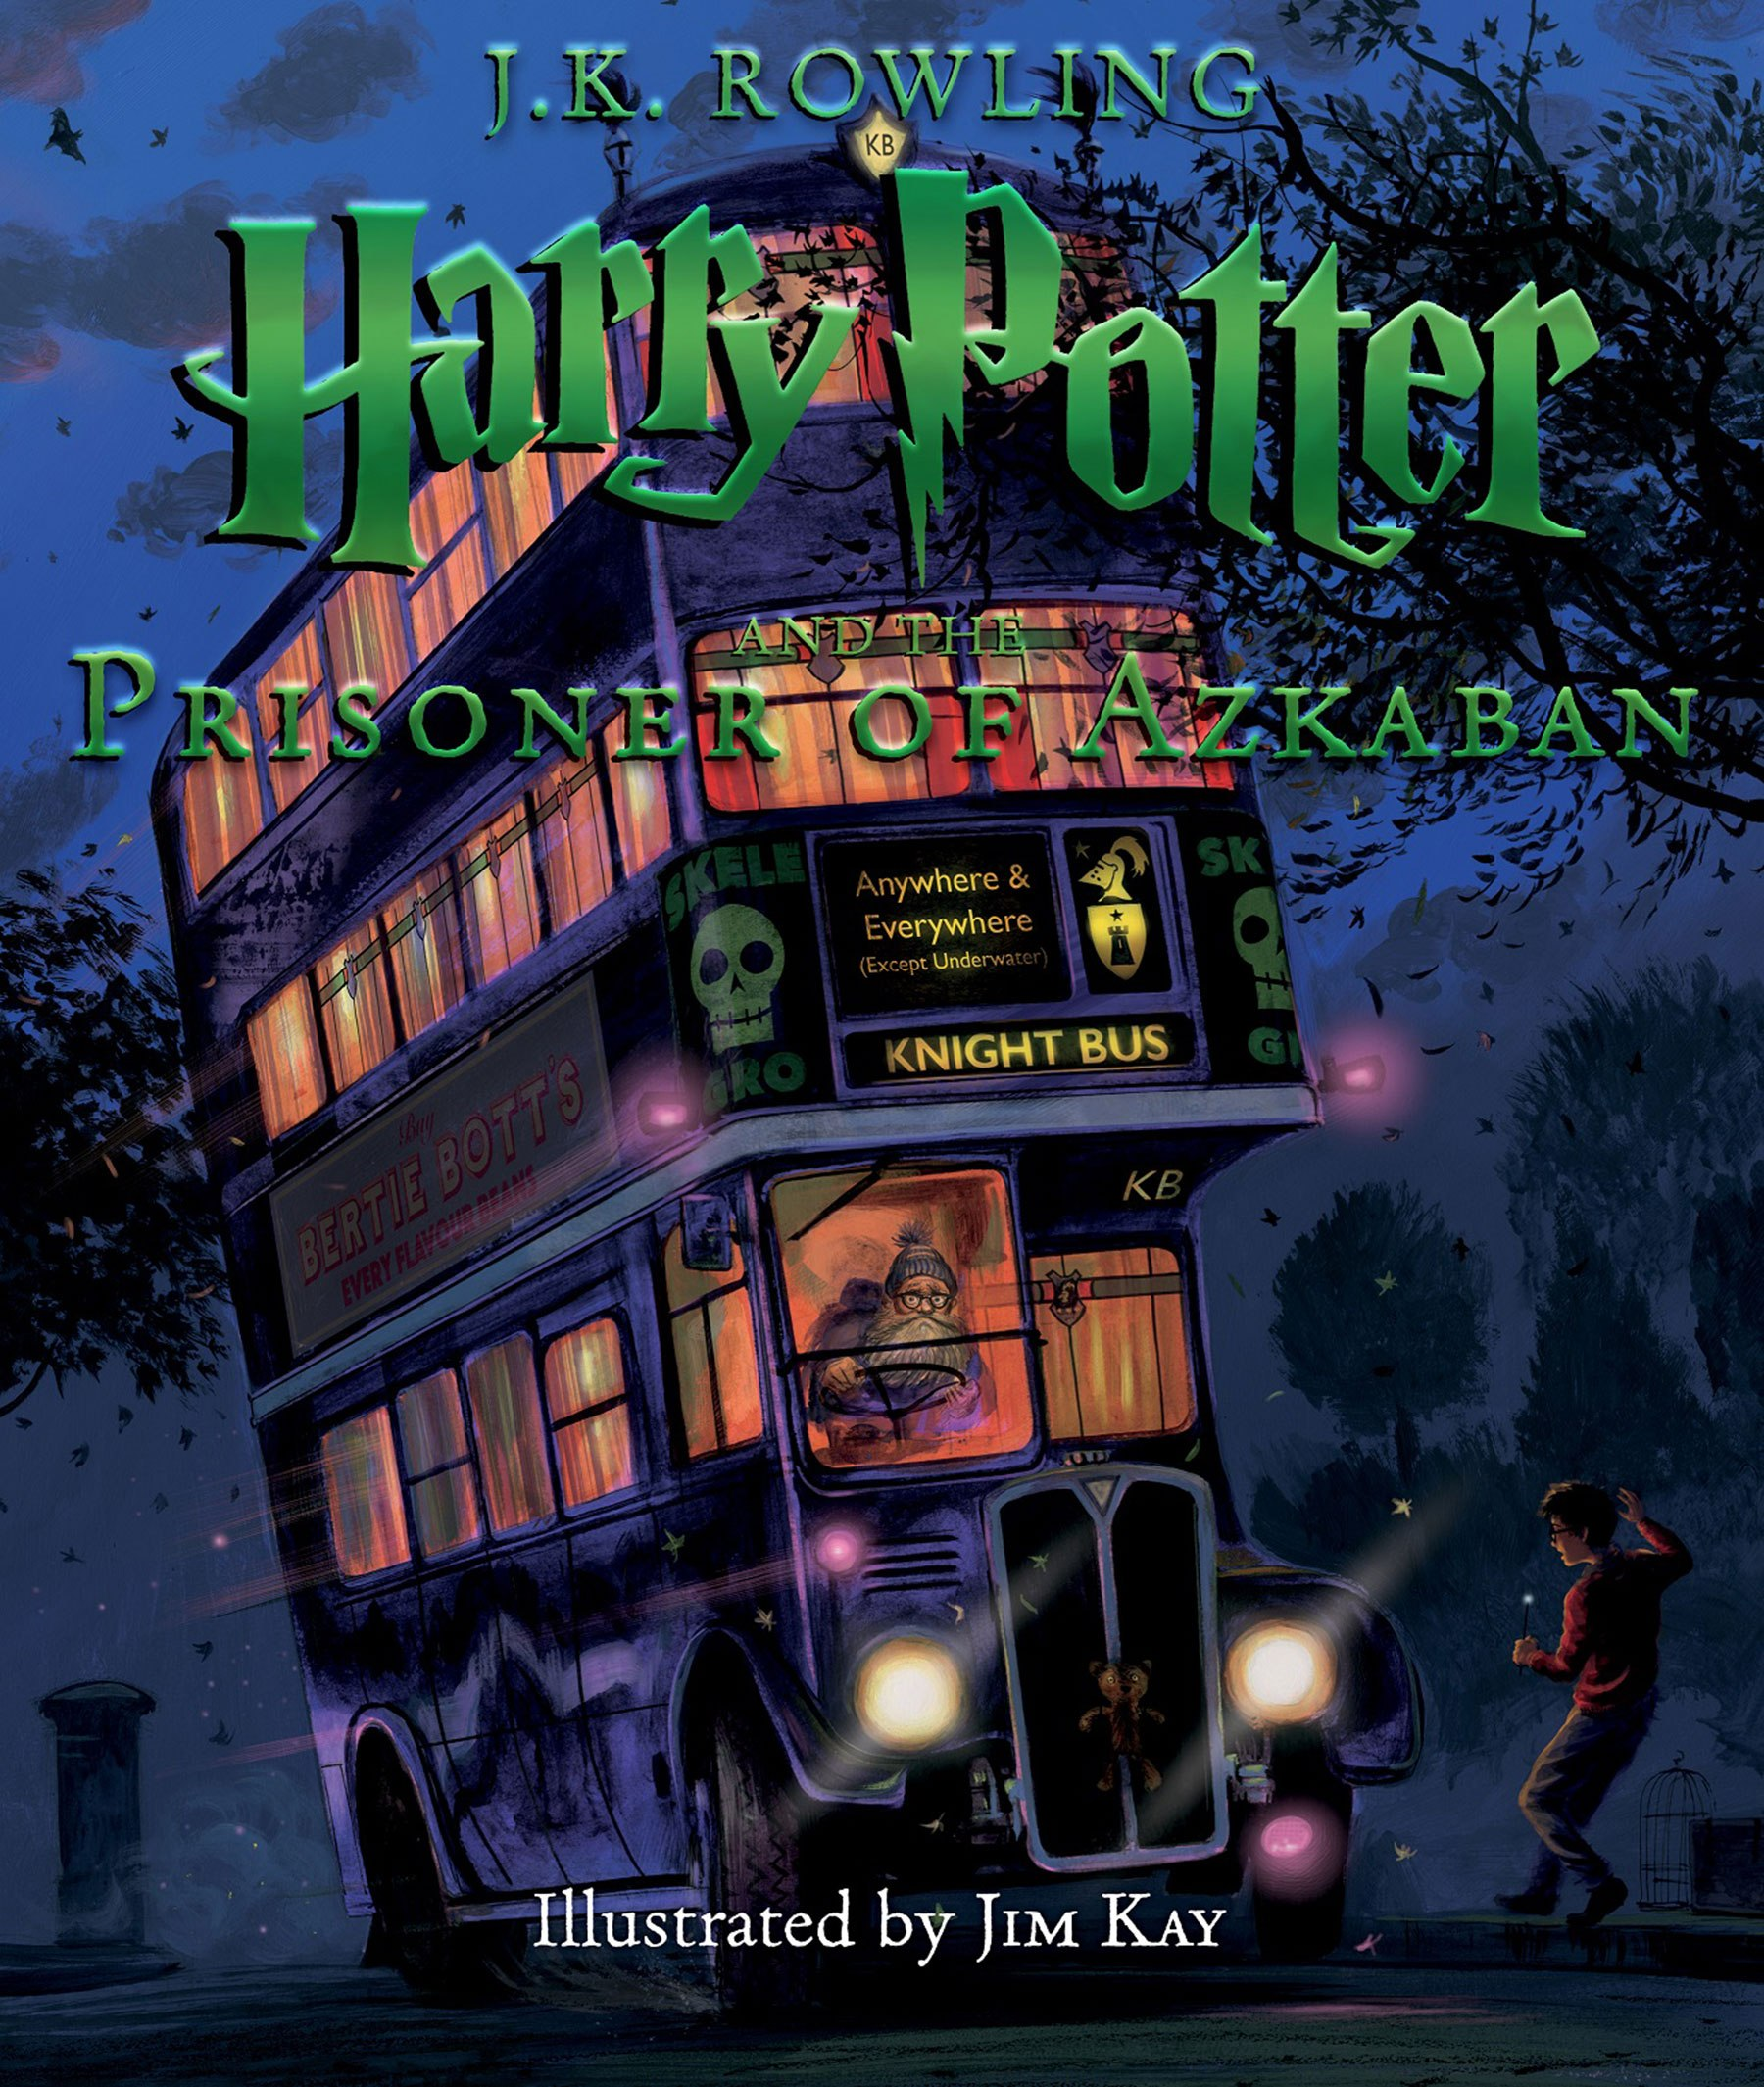 Harry Potter Libro Ilustrado Check Out The Cover Of Harry Potter And The Prisoner Of